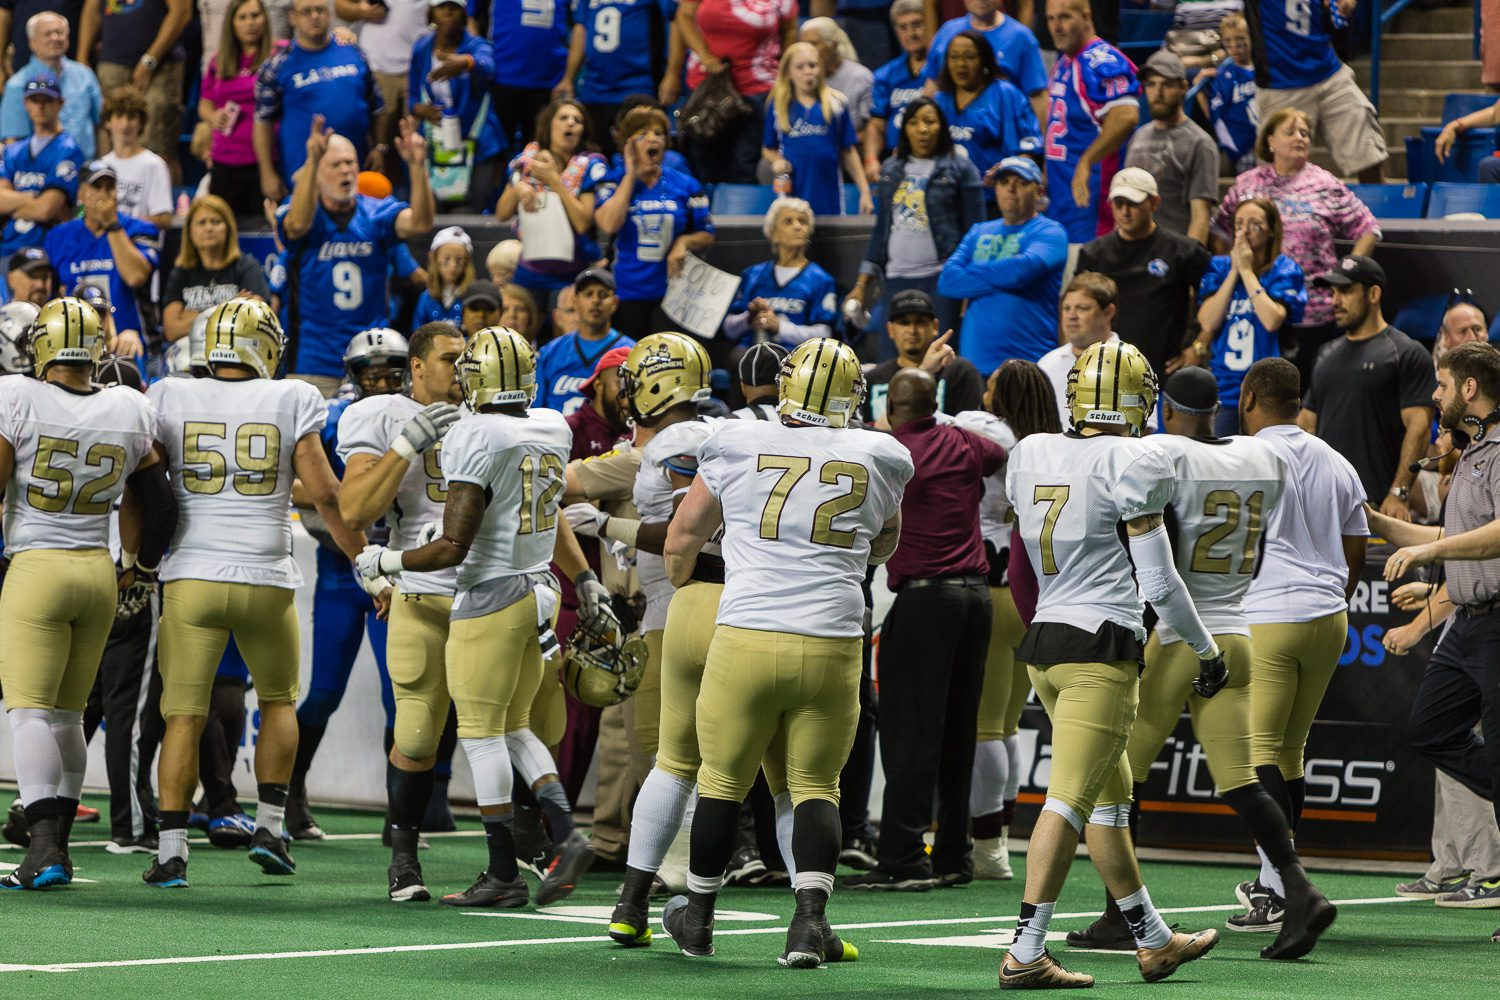 Lynk says Ironmen ended title game early for safety, following abuse from fans